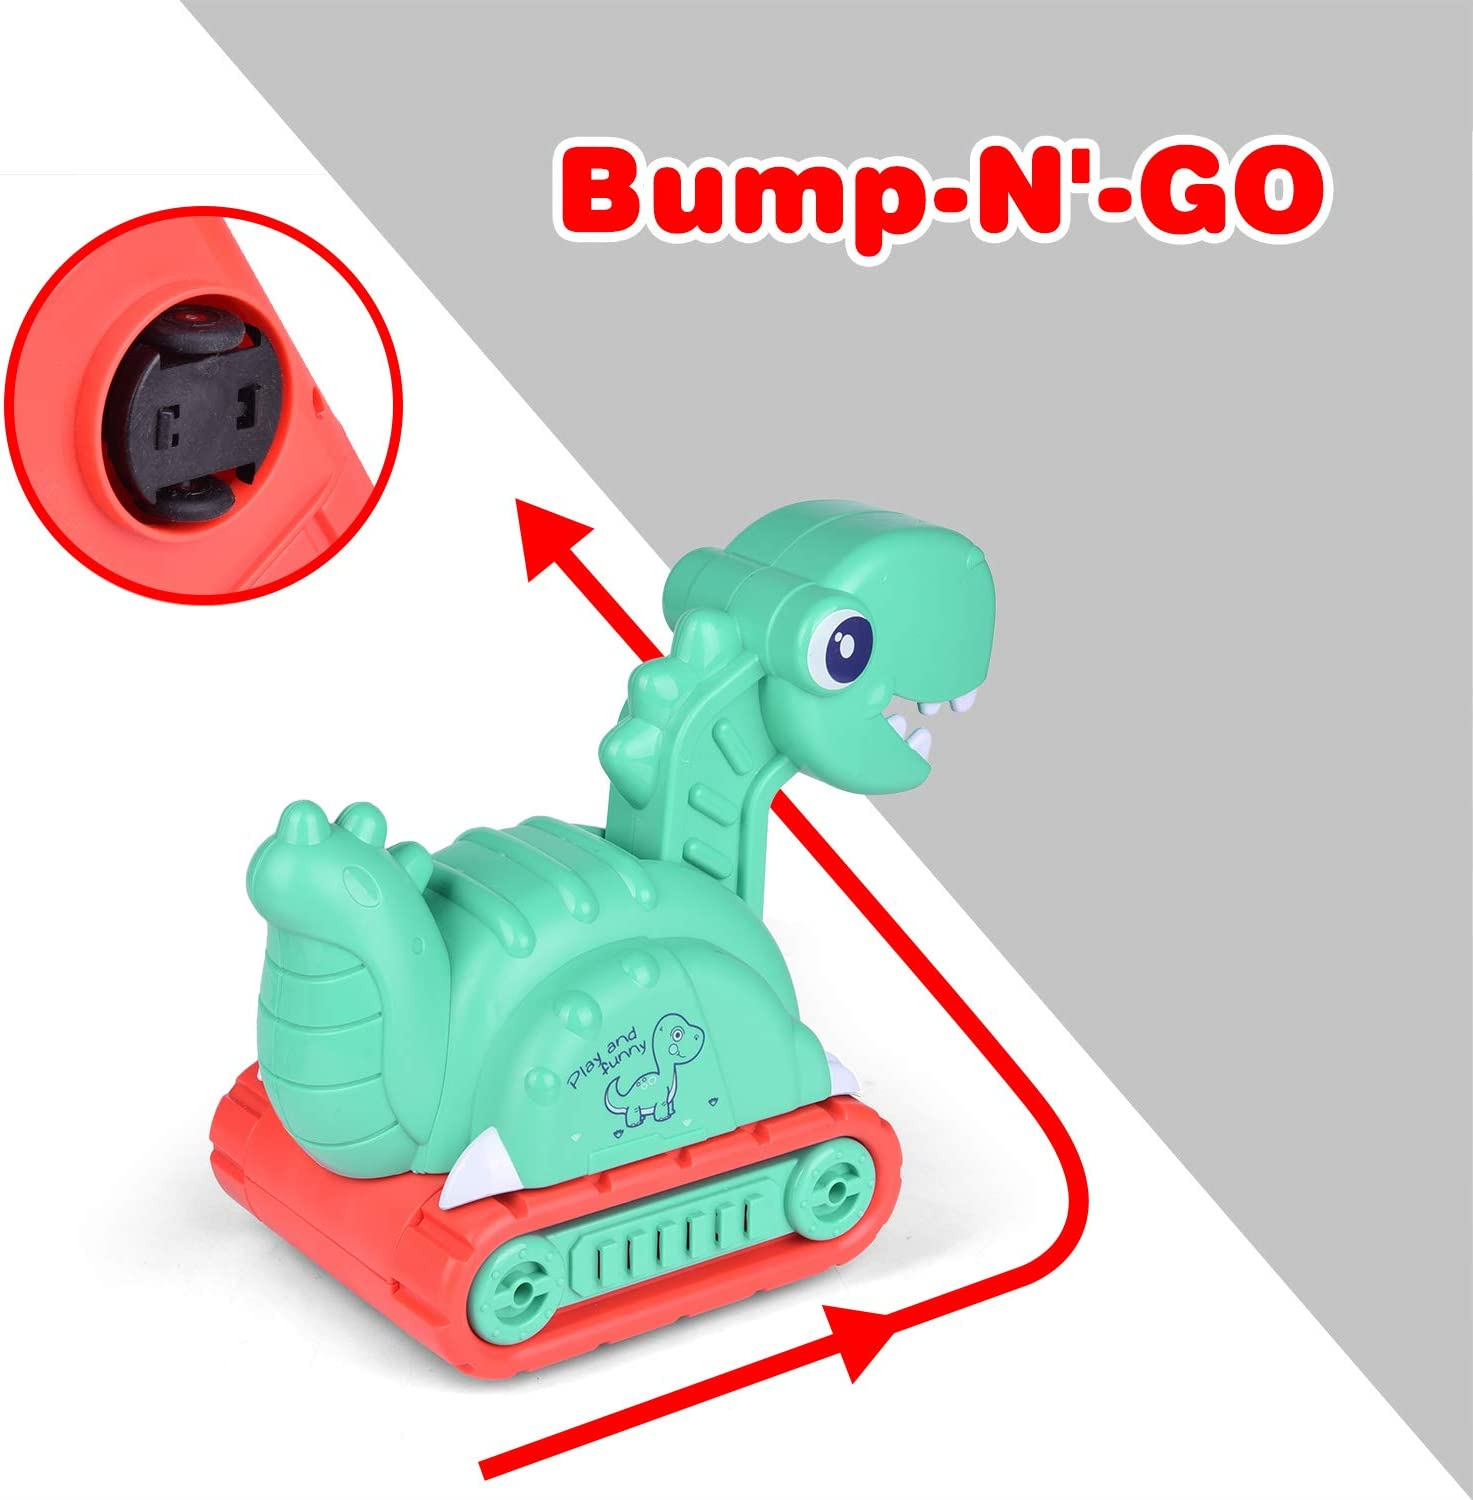 Bump and Go Cars Dinosaur Toys with Light and Sound FUN LITTLE TOYS Dinosaur Car for Kids Gifts for Boys and Girls